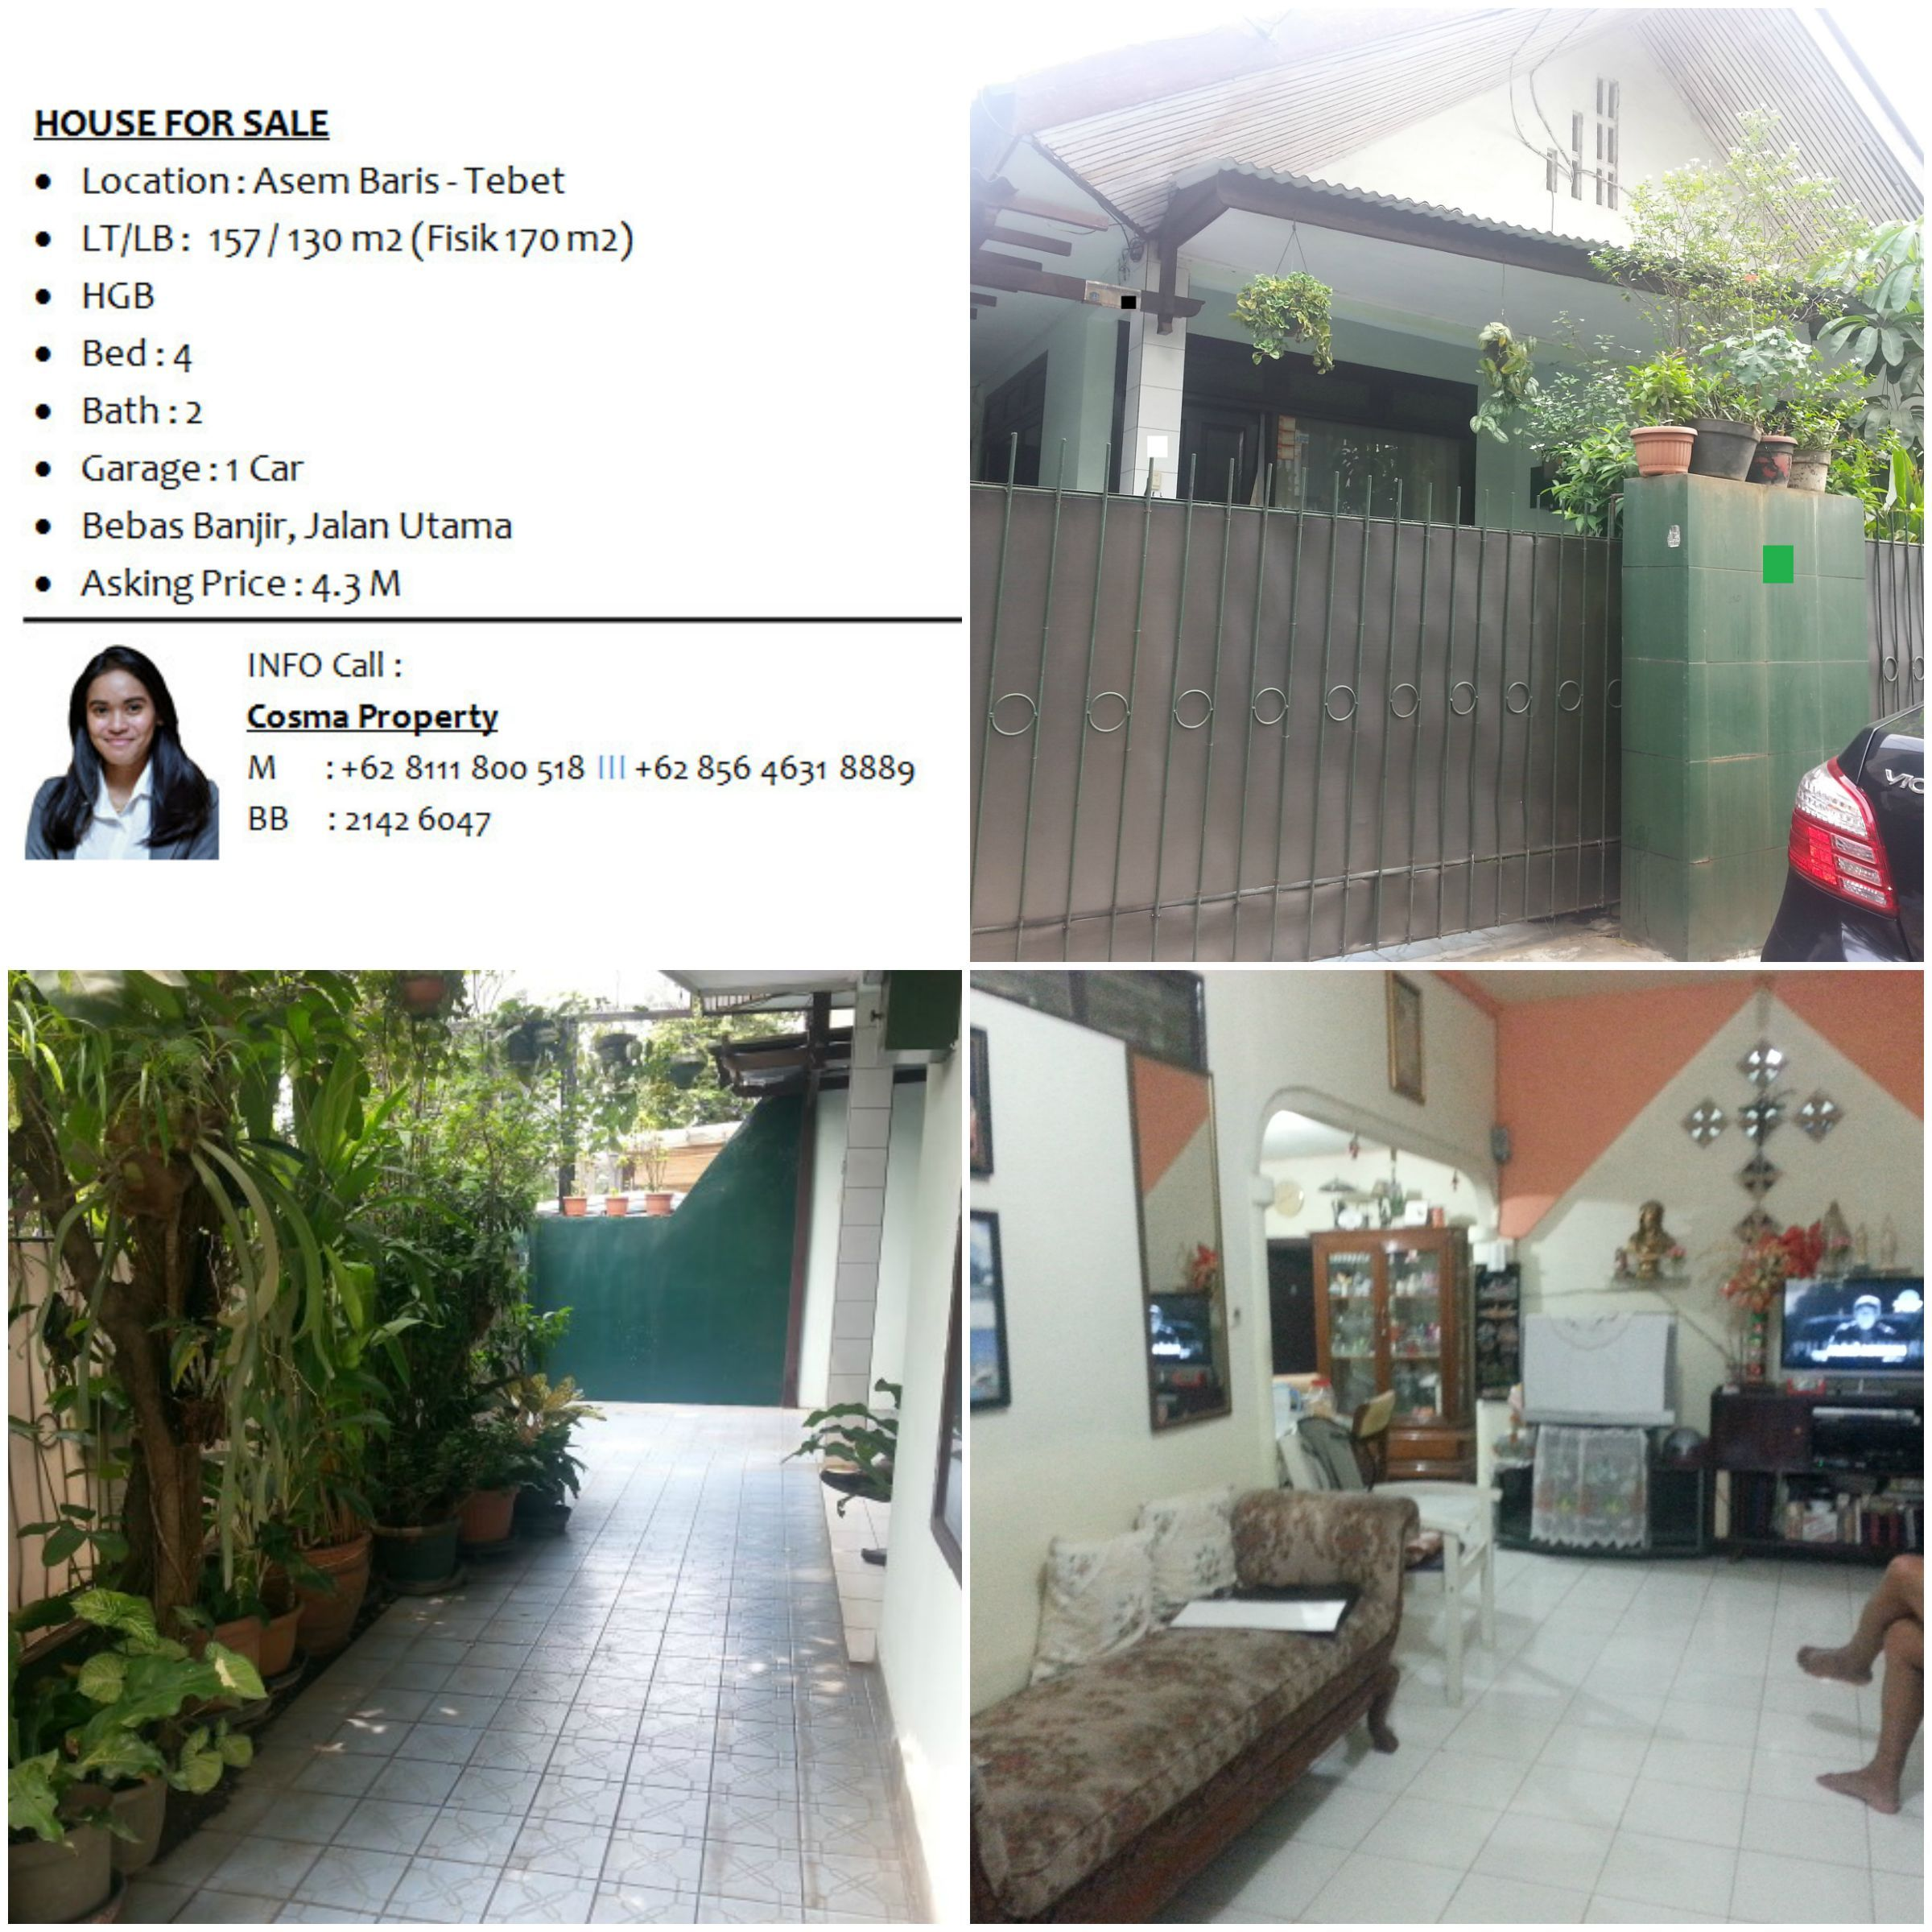 HOUSE FOR SALE TEBET   Location : Asem Baris   Tebet   LT/LB : 157 / 130 M2  (Fisik 170 M2)   HGB   Bed : 4   Bath : 2   Garage ...